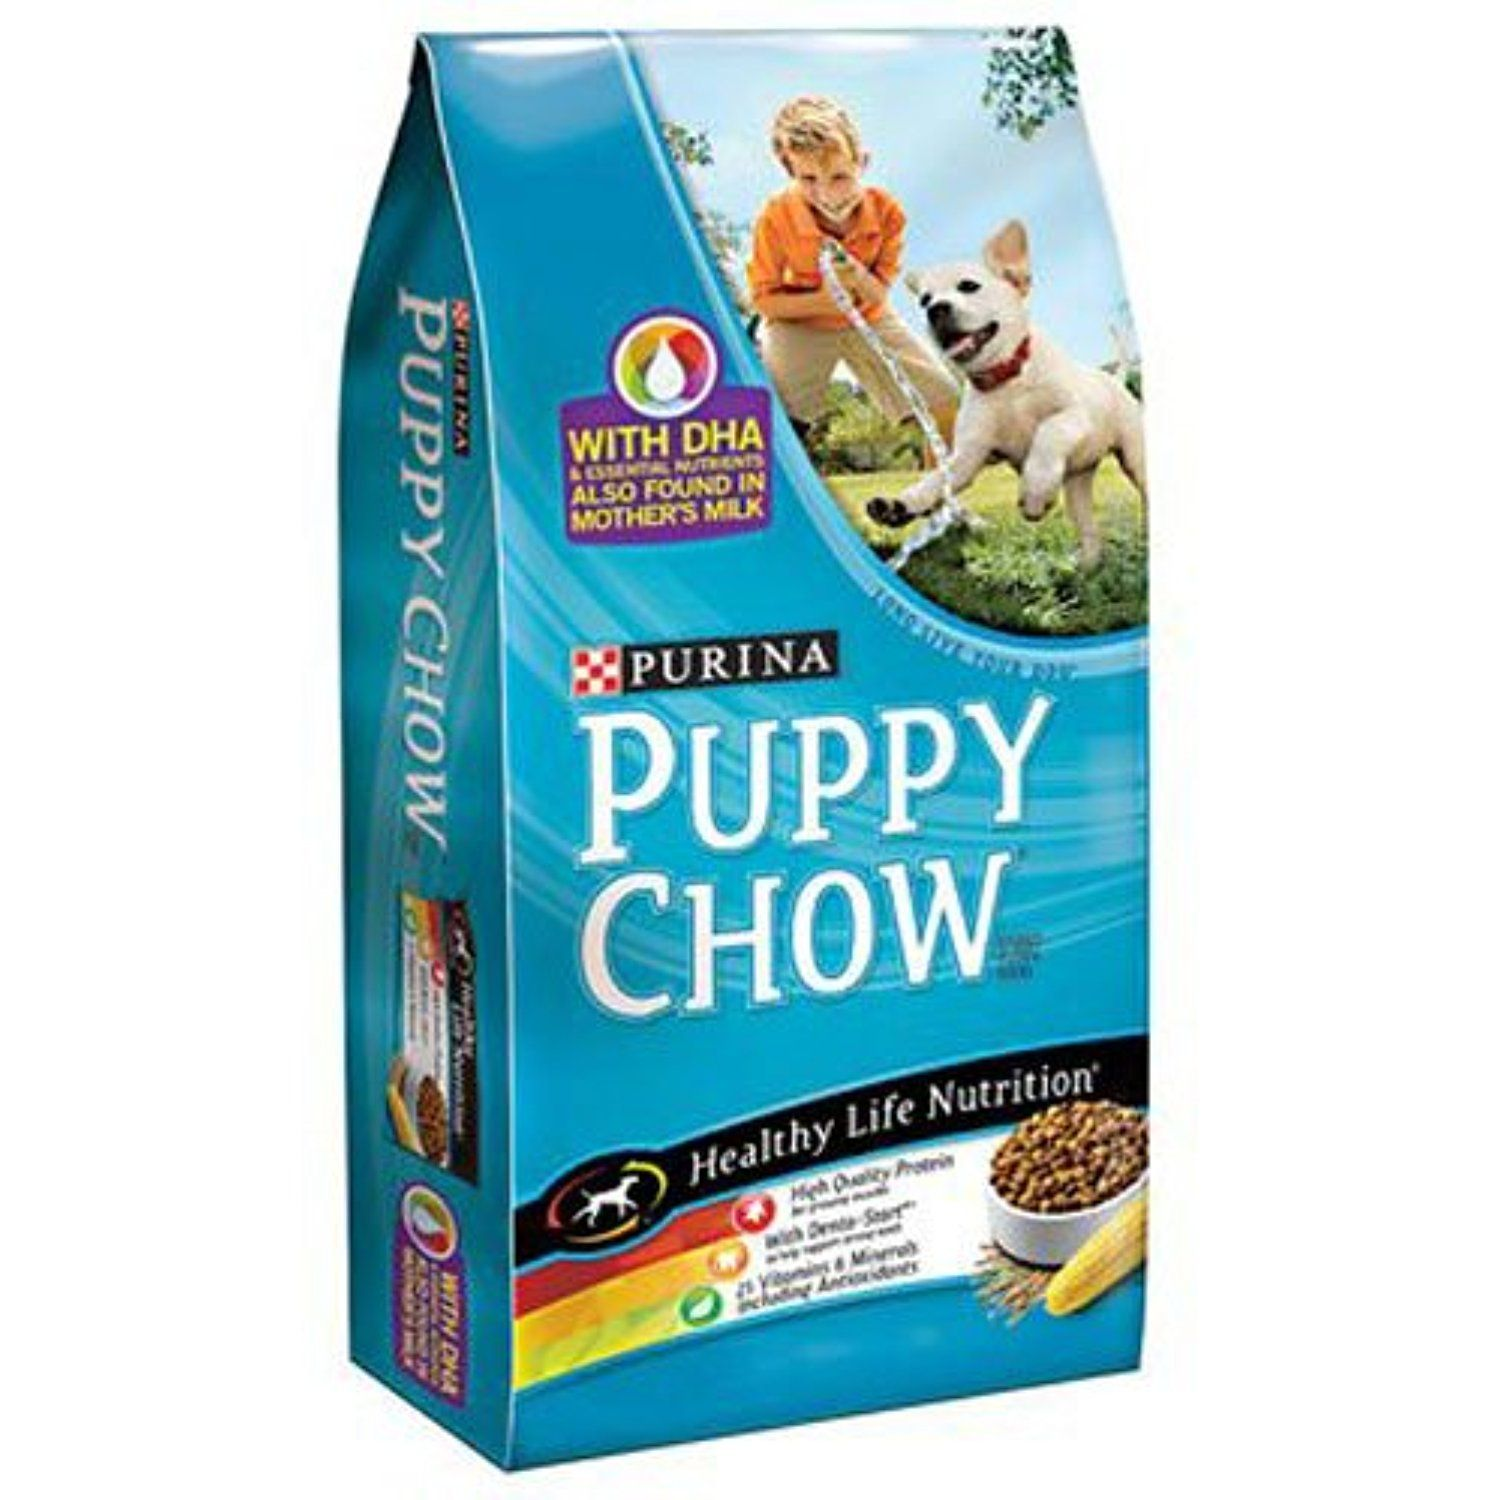 Purina 178108 Puppy Chow Complete Pet Food 32 Lb You Can Find Out More About The Great Product At The Image Link This Is An Affiliate Li Purina Puppy Chow